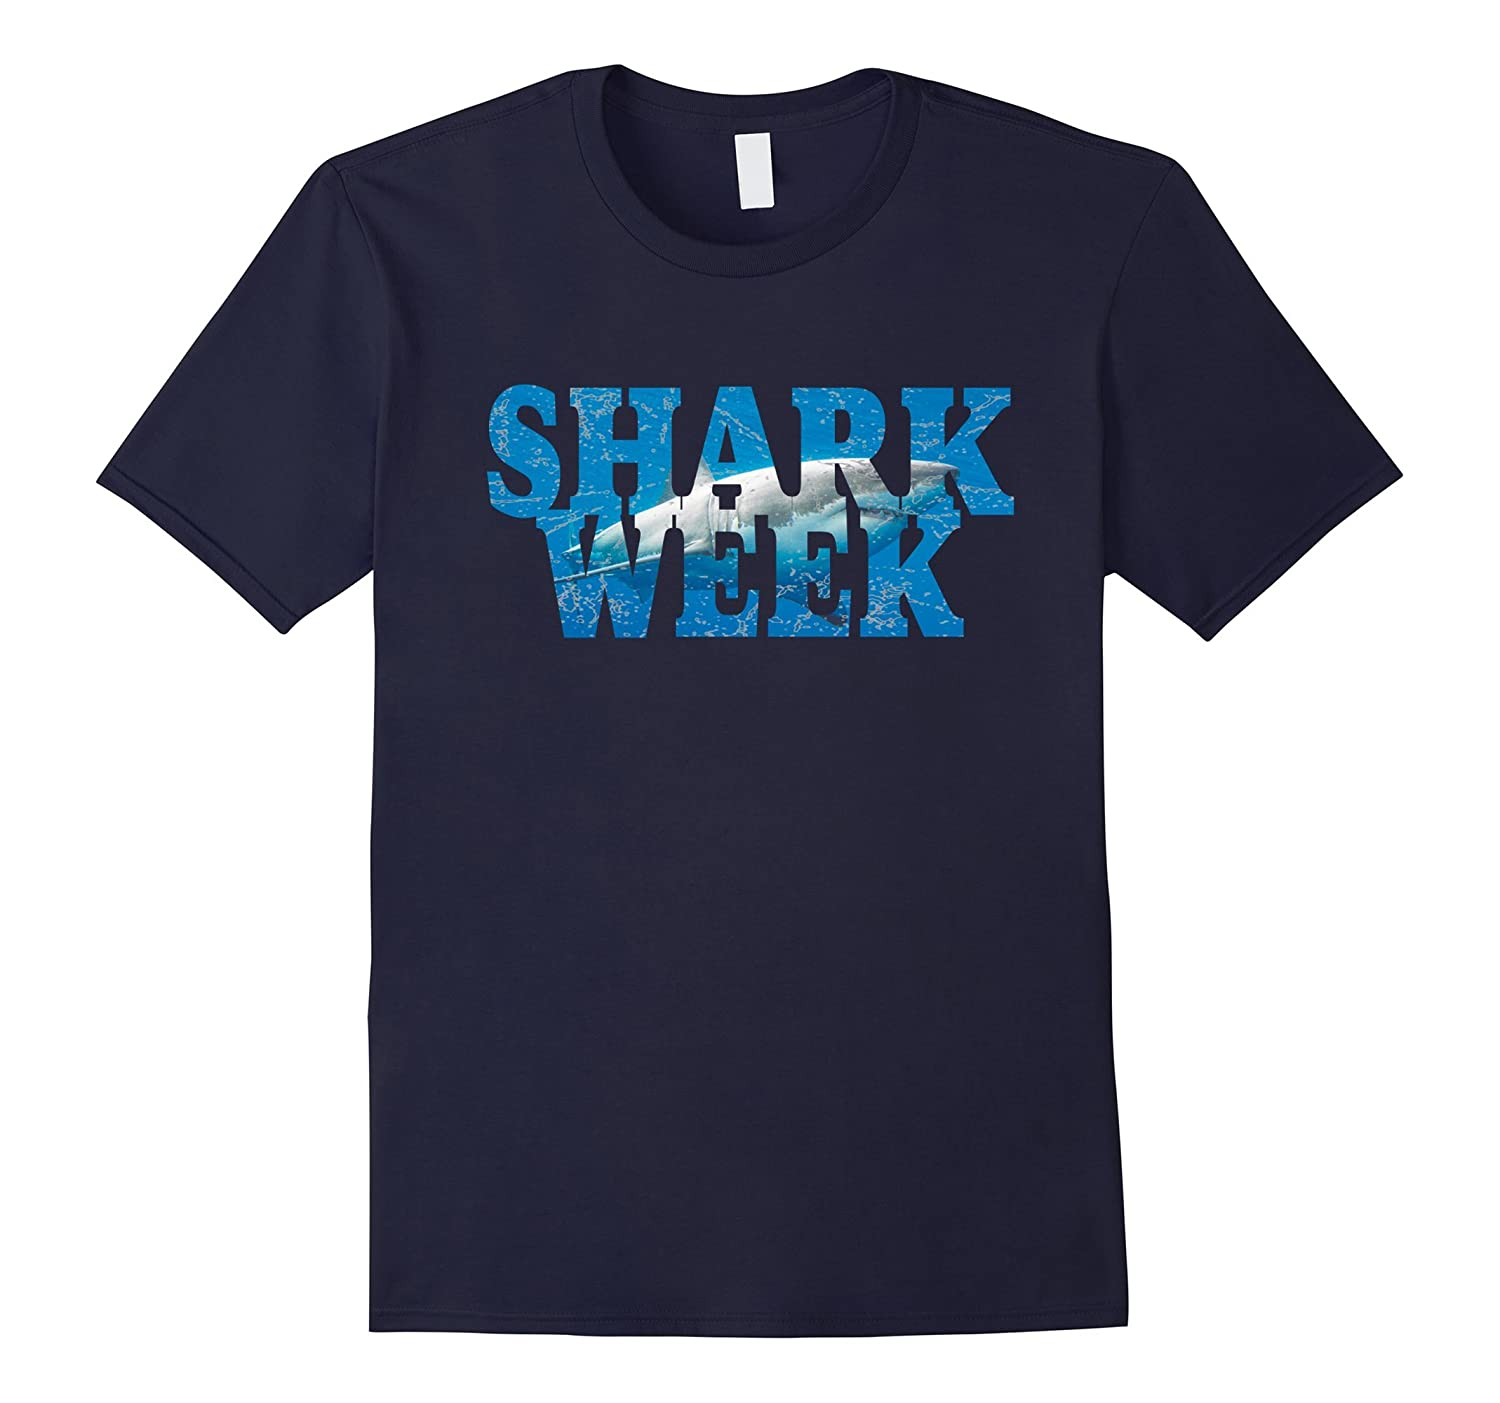 Week Of The Shark - New 2017 Graphic Funny T-Shirt-BN